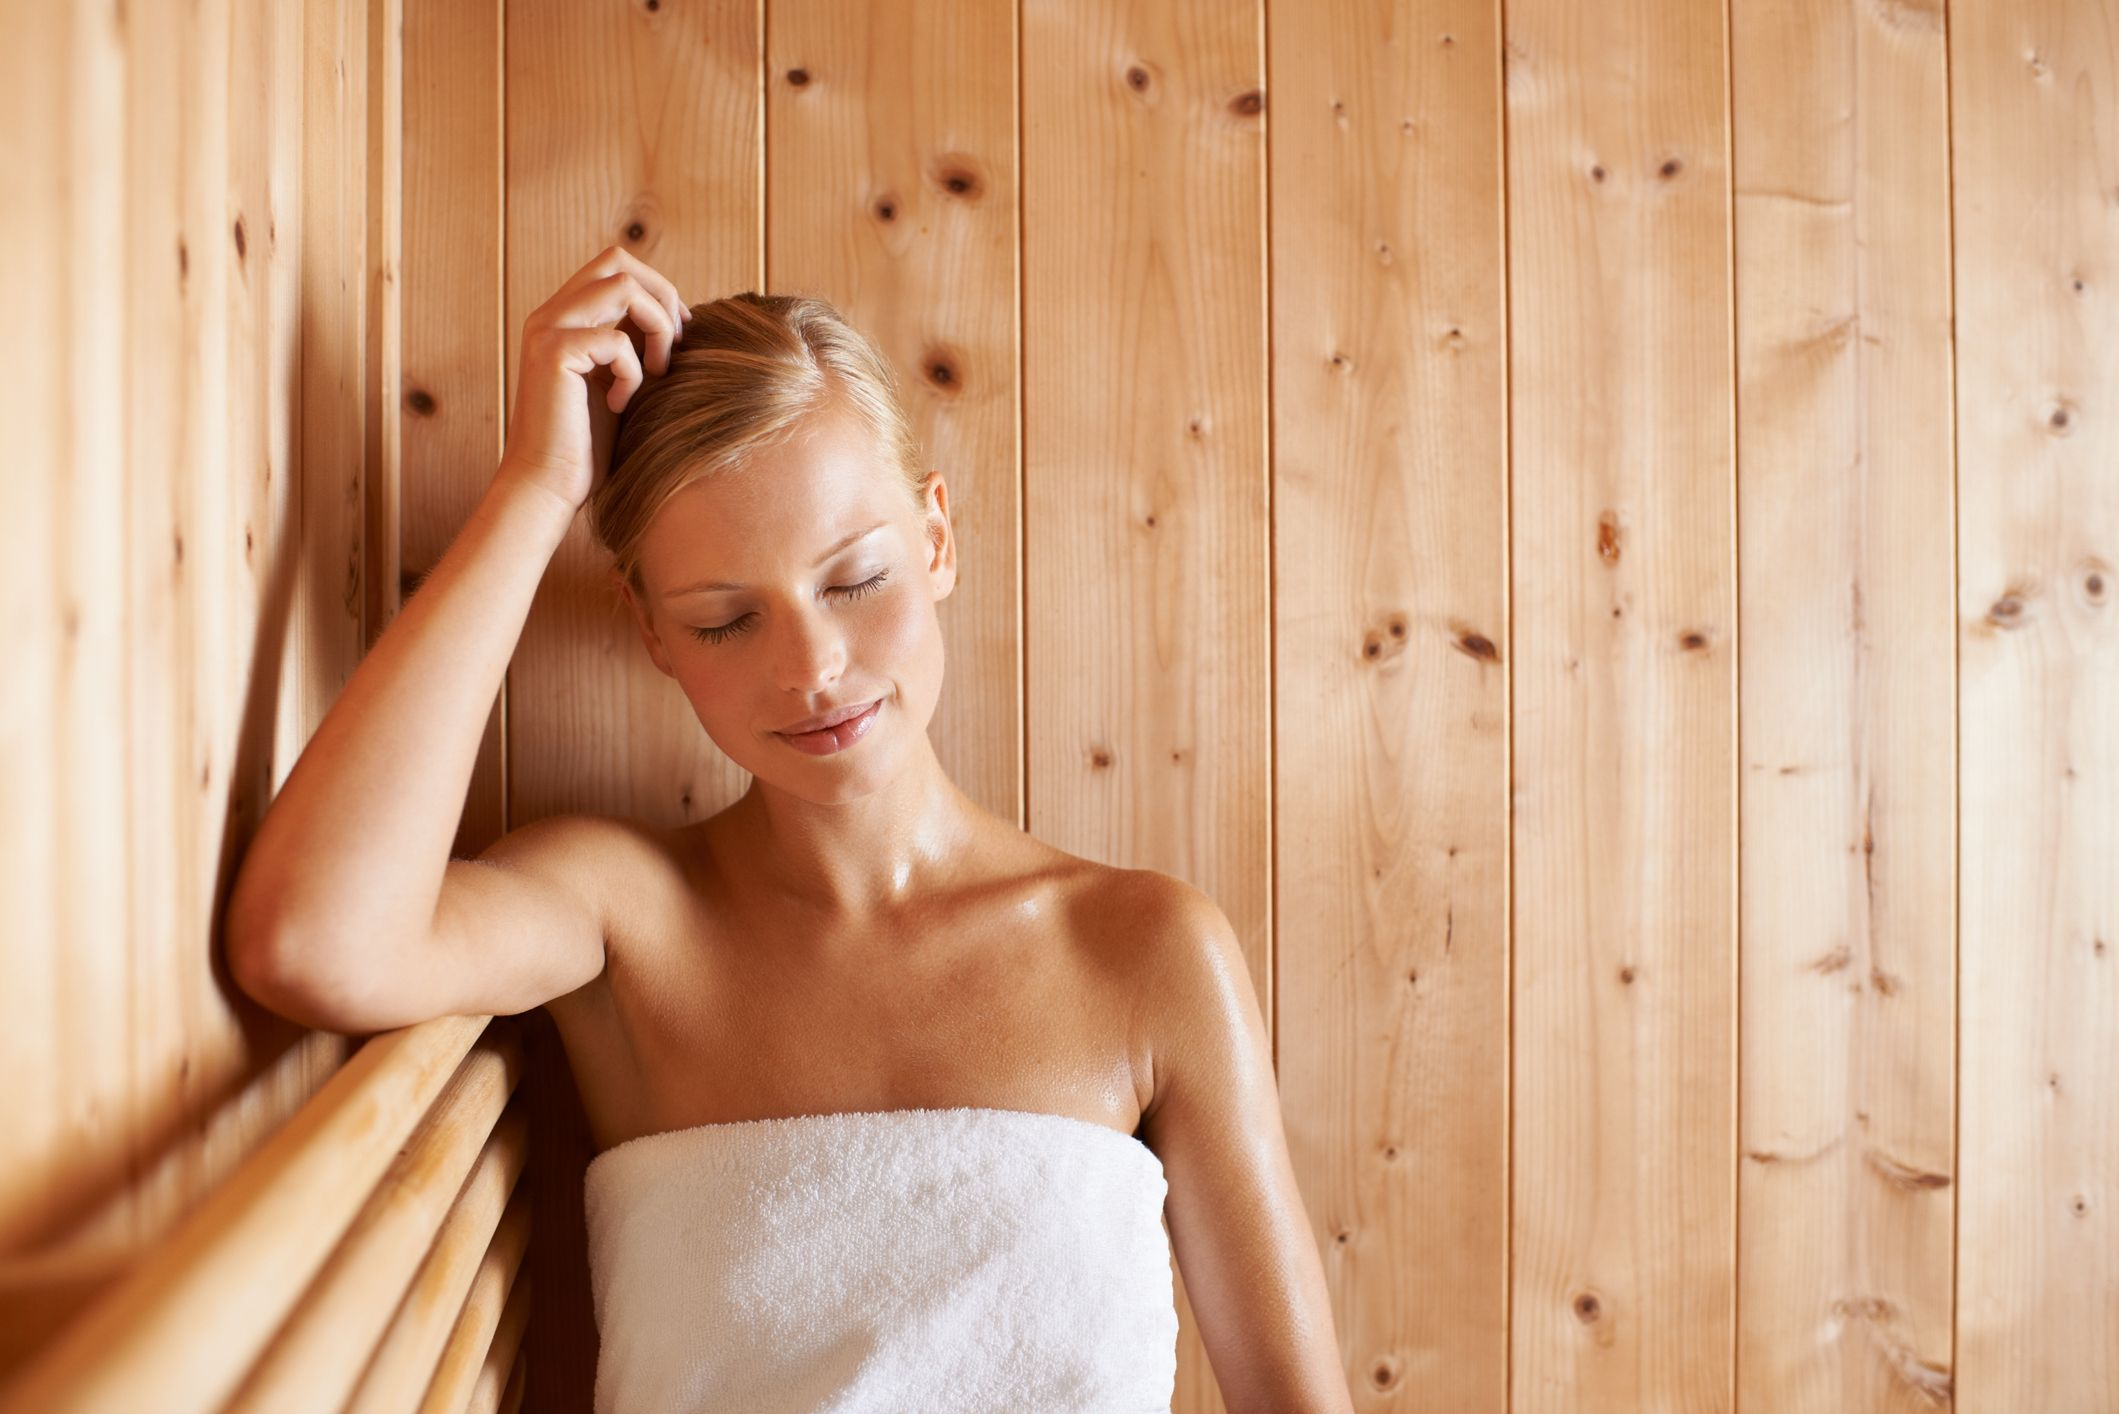 7 Surprising Health Benefits of Using a Sauna